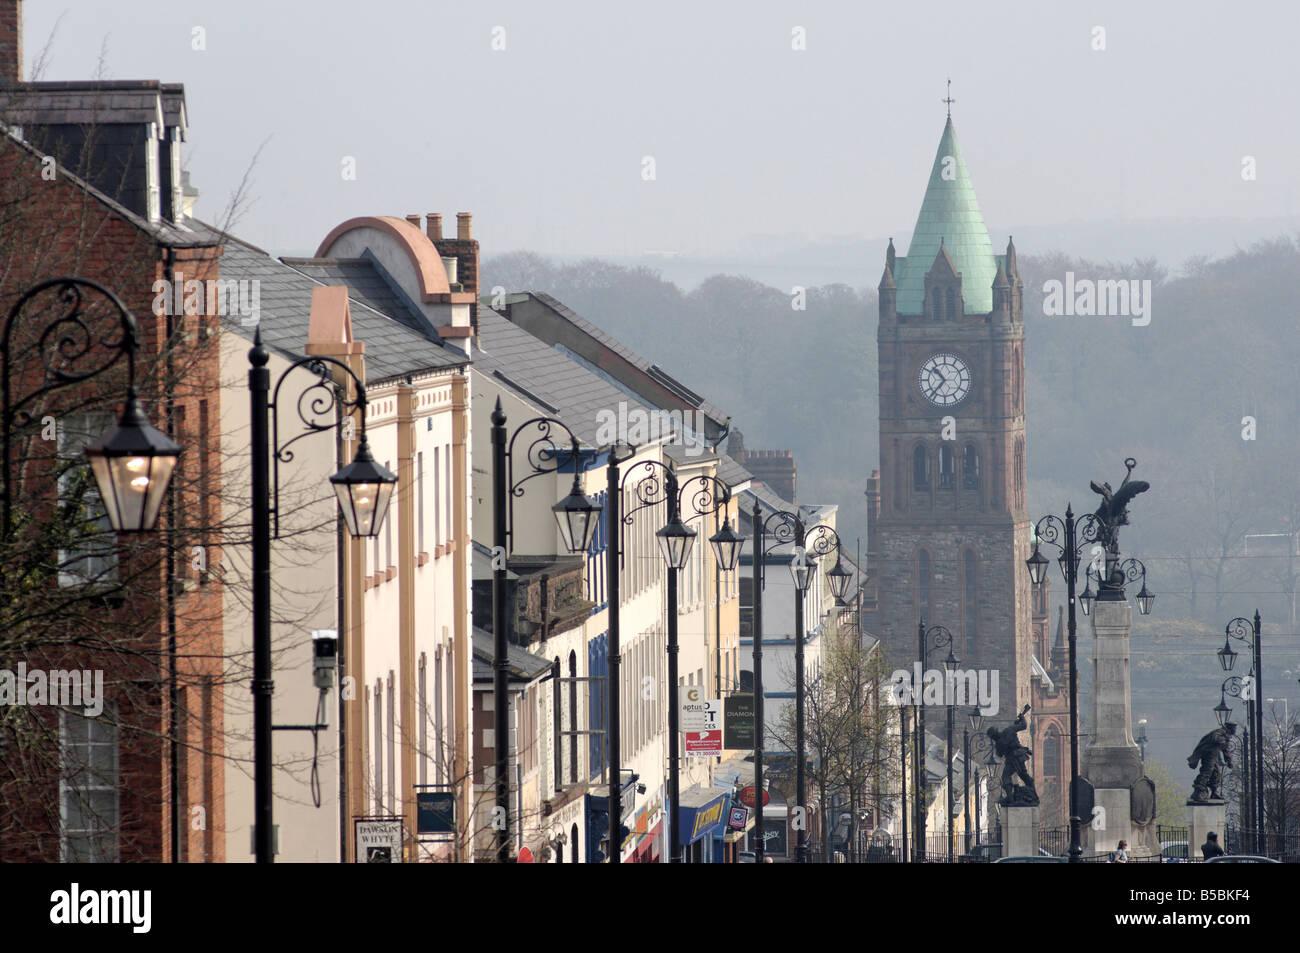 City of Derry, Ulster, Northern Ireland, , Europe - Stock Image